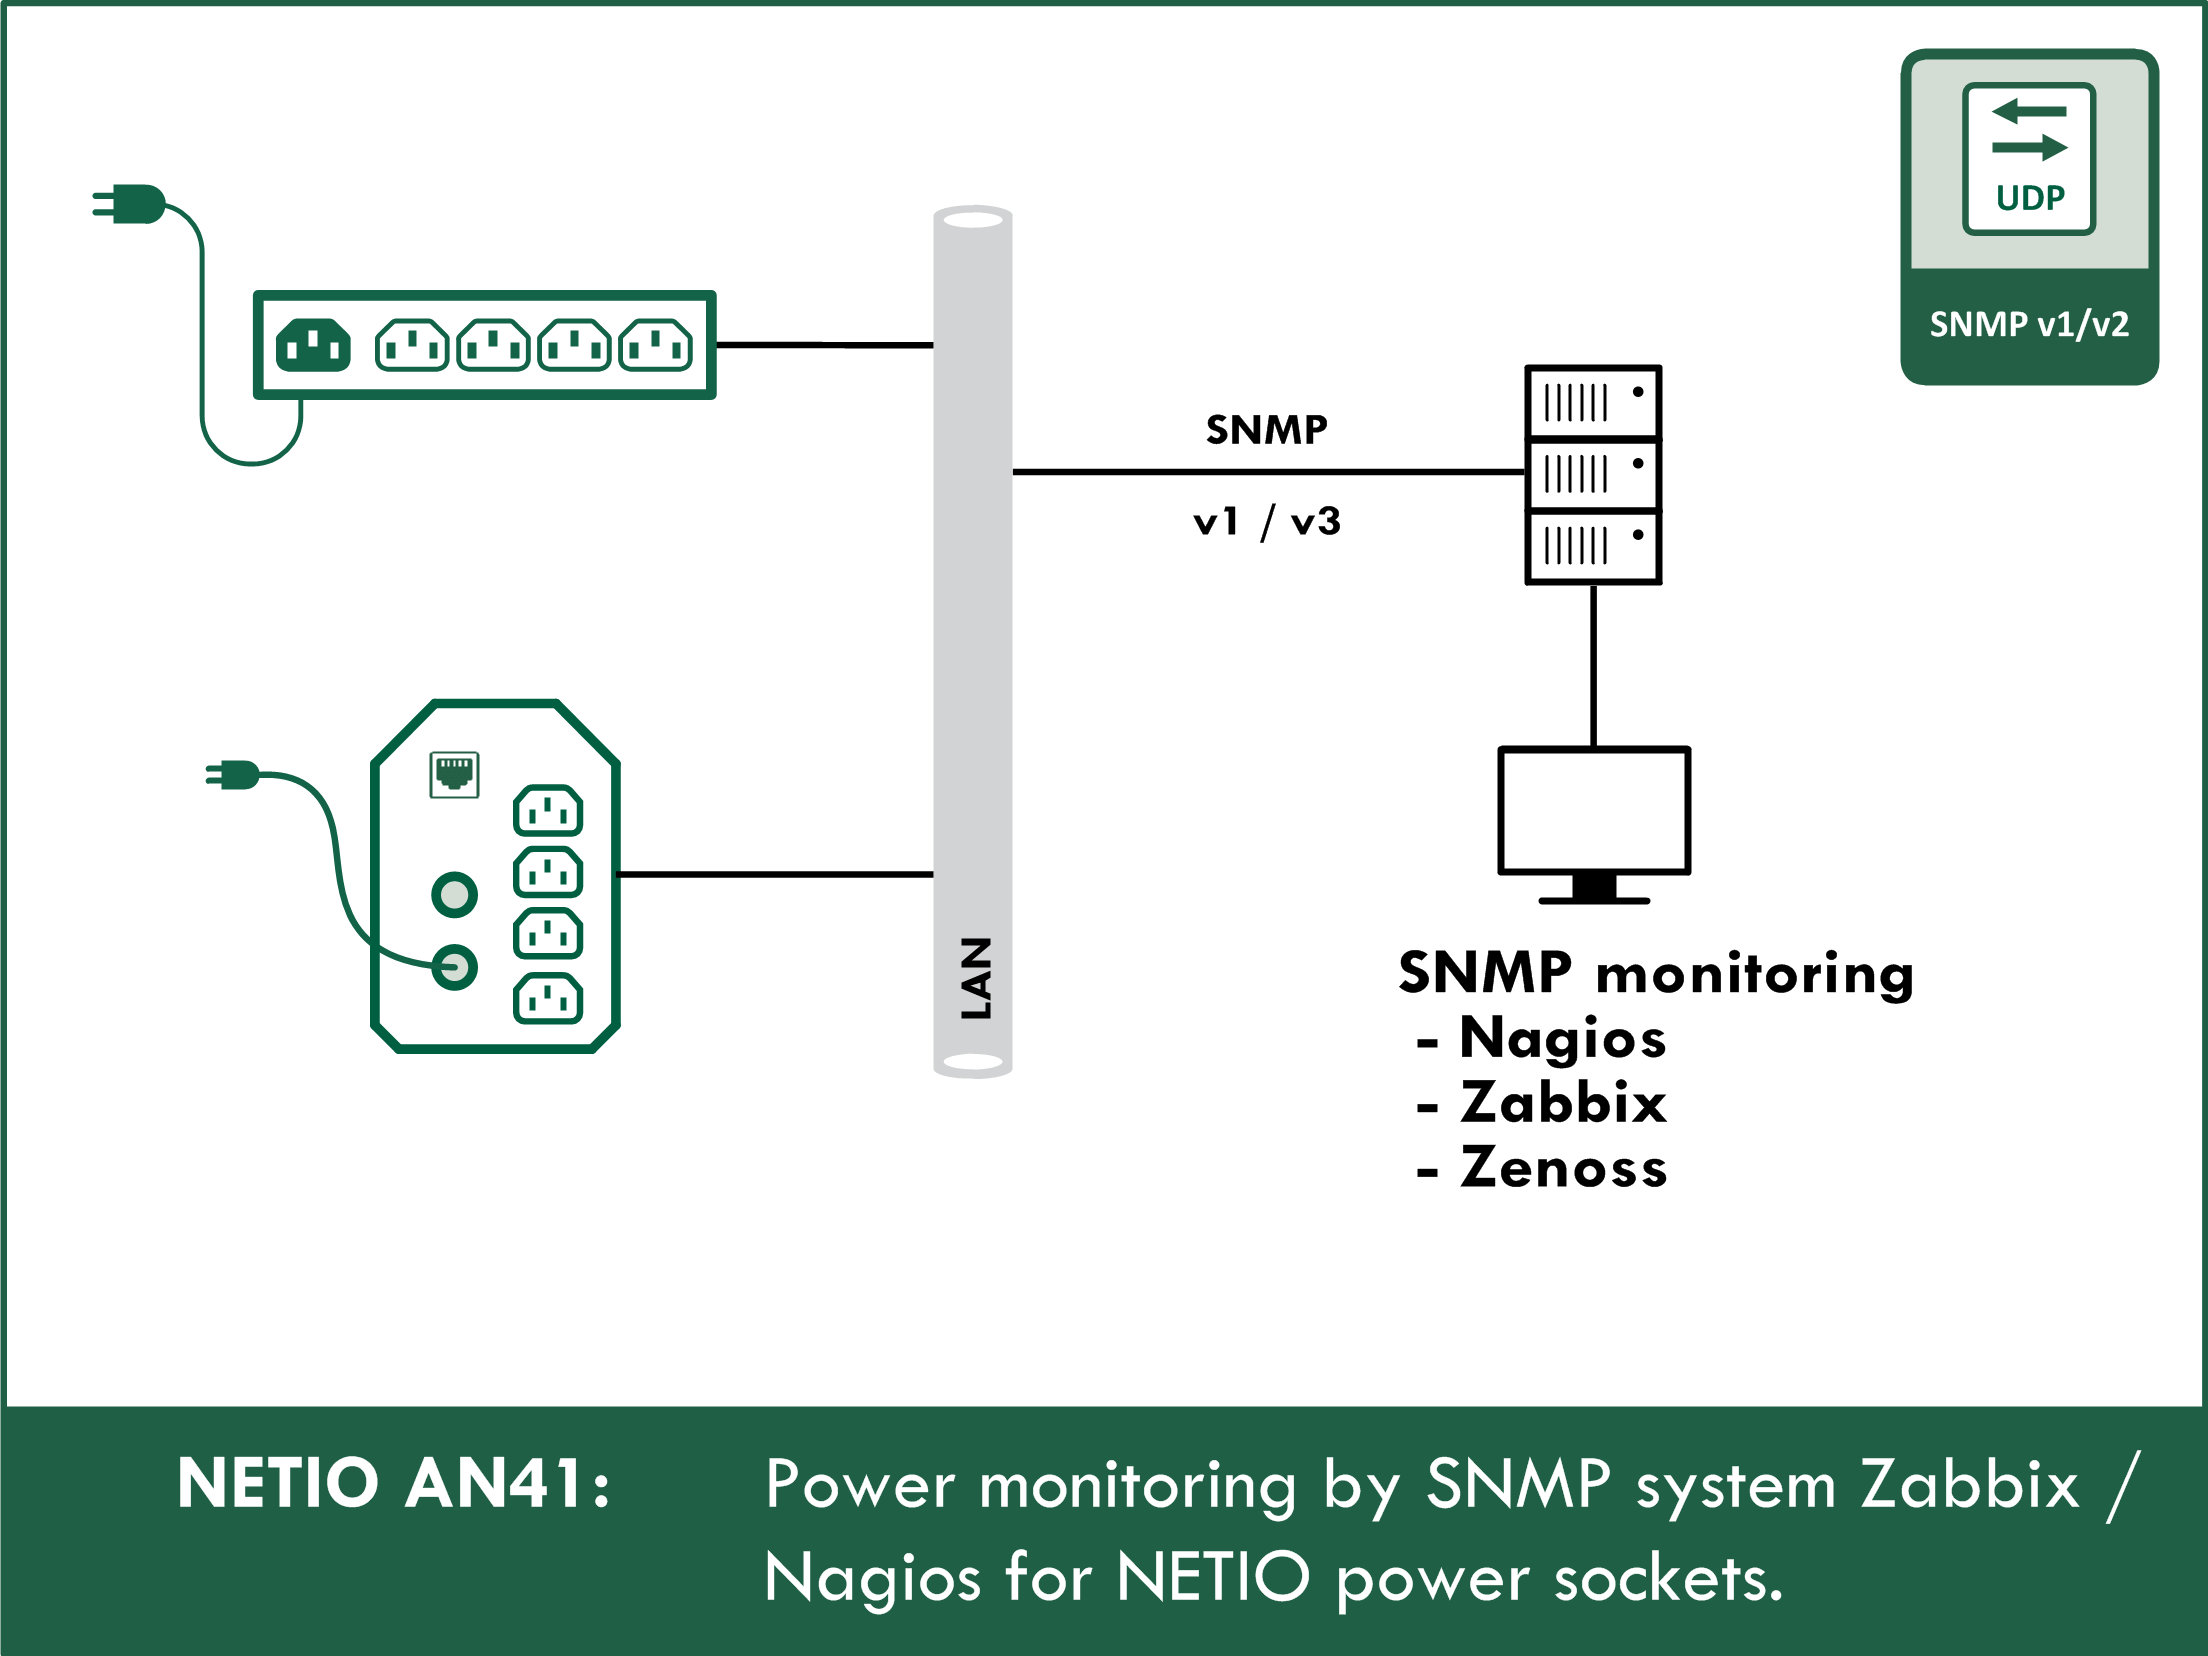 Power monitoring over SNMP in Zabbix / Nagios for NETIO power sockets